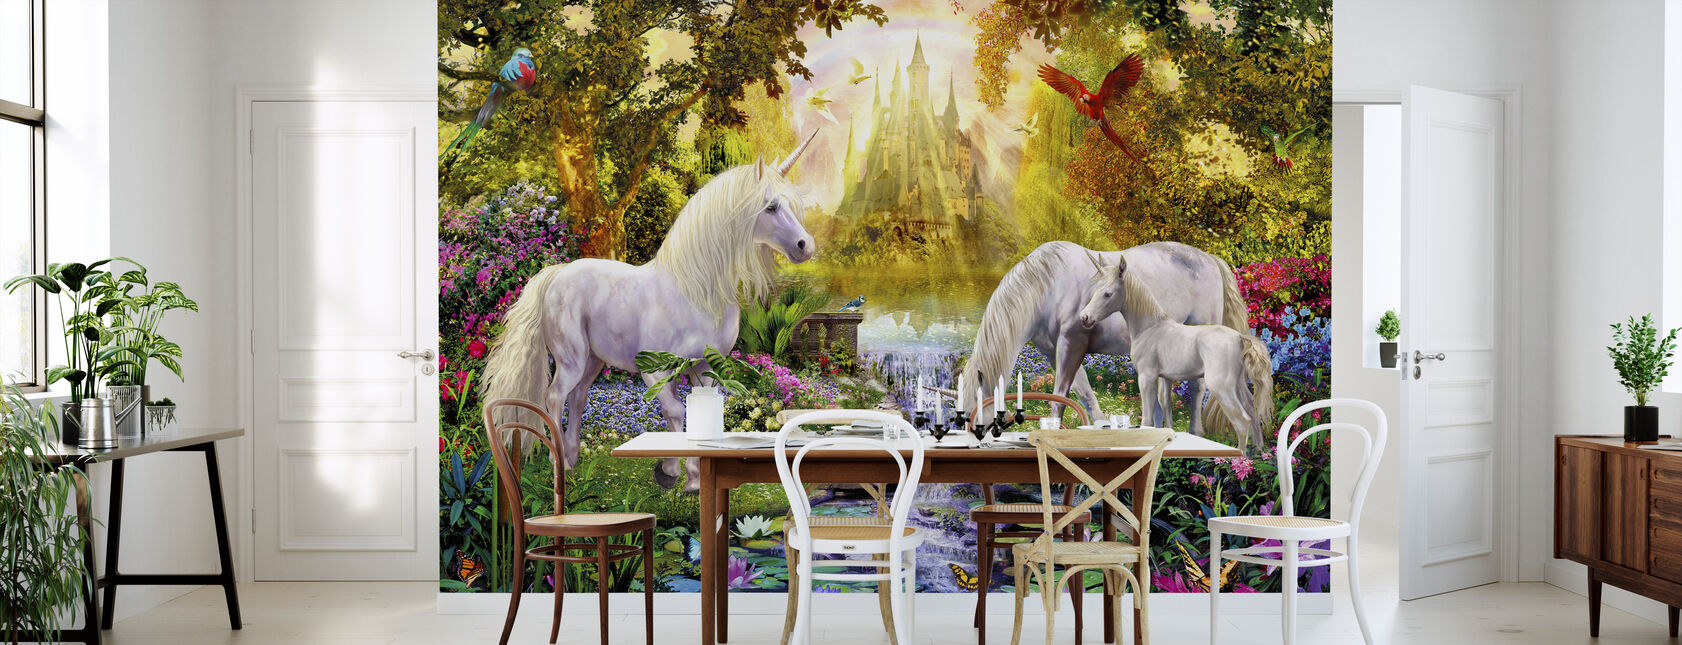 The Castle Unicorn Garden - Wallpaper - Kitchen